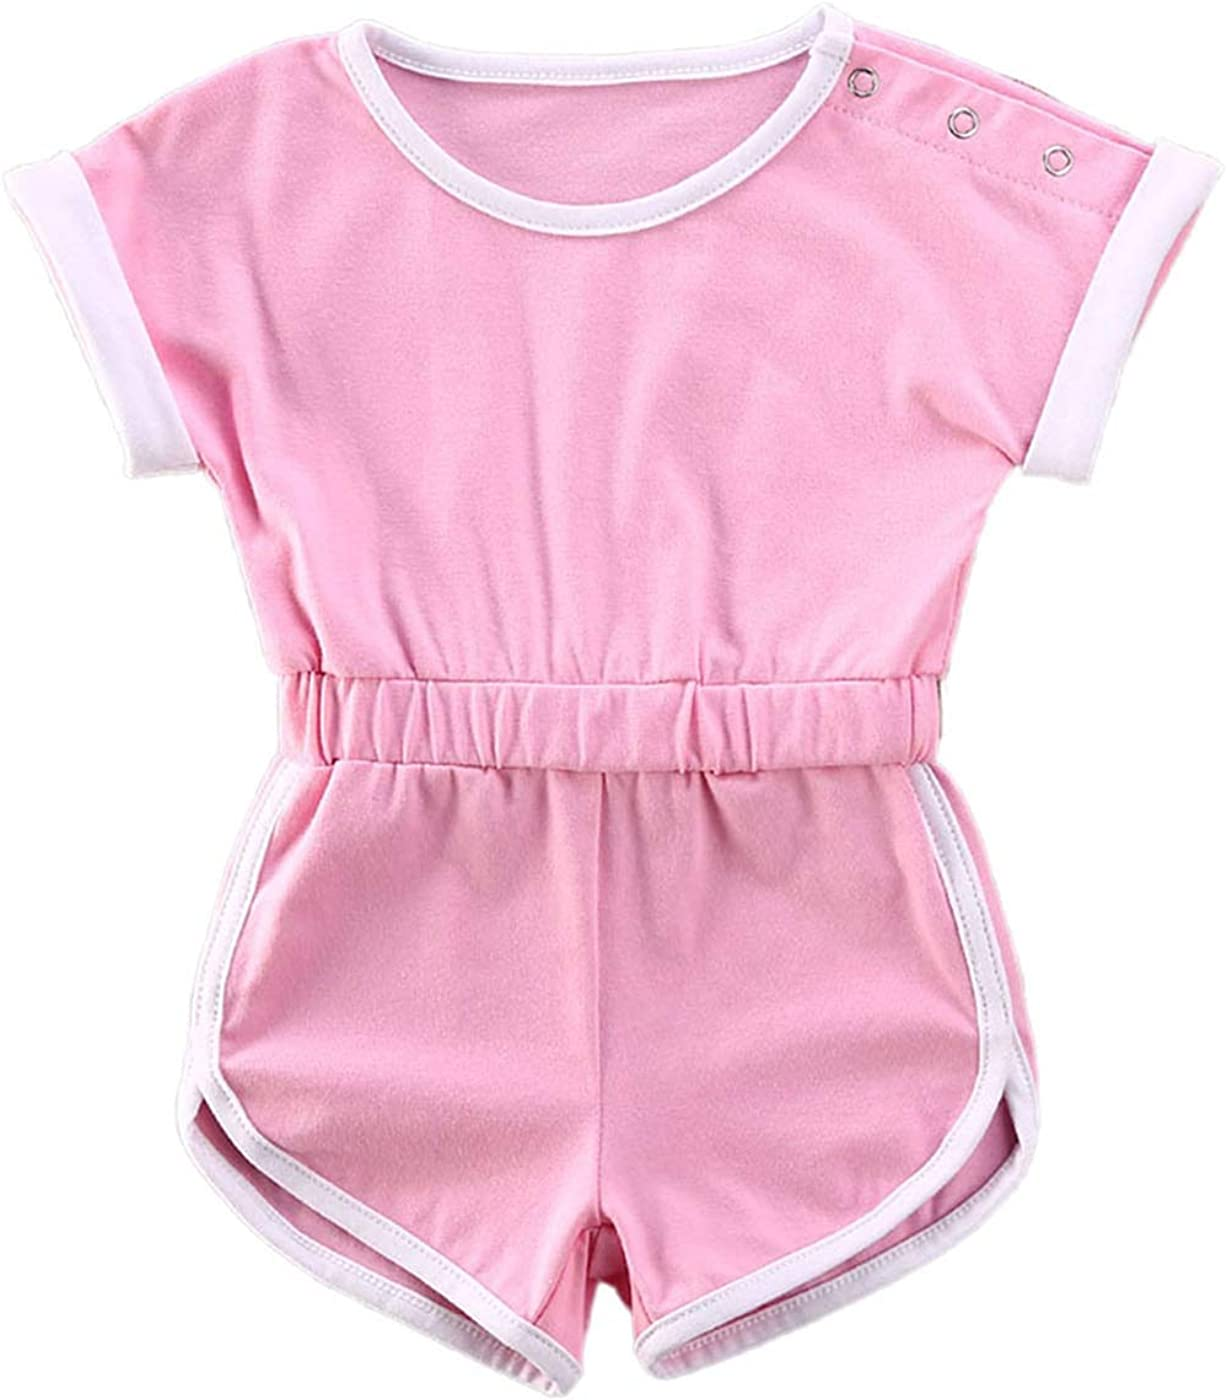 Qiylii Newborn Baby Girl Short Sleeve Solid Color Rompers One-Piece Jumpsuit Sweatsuit Summer Clothes